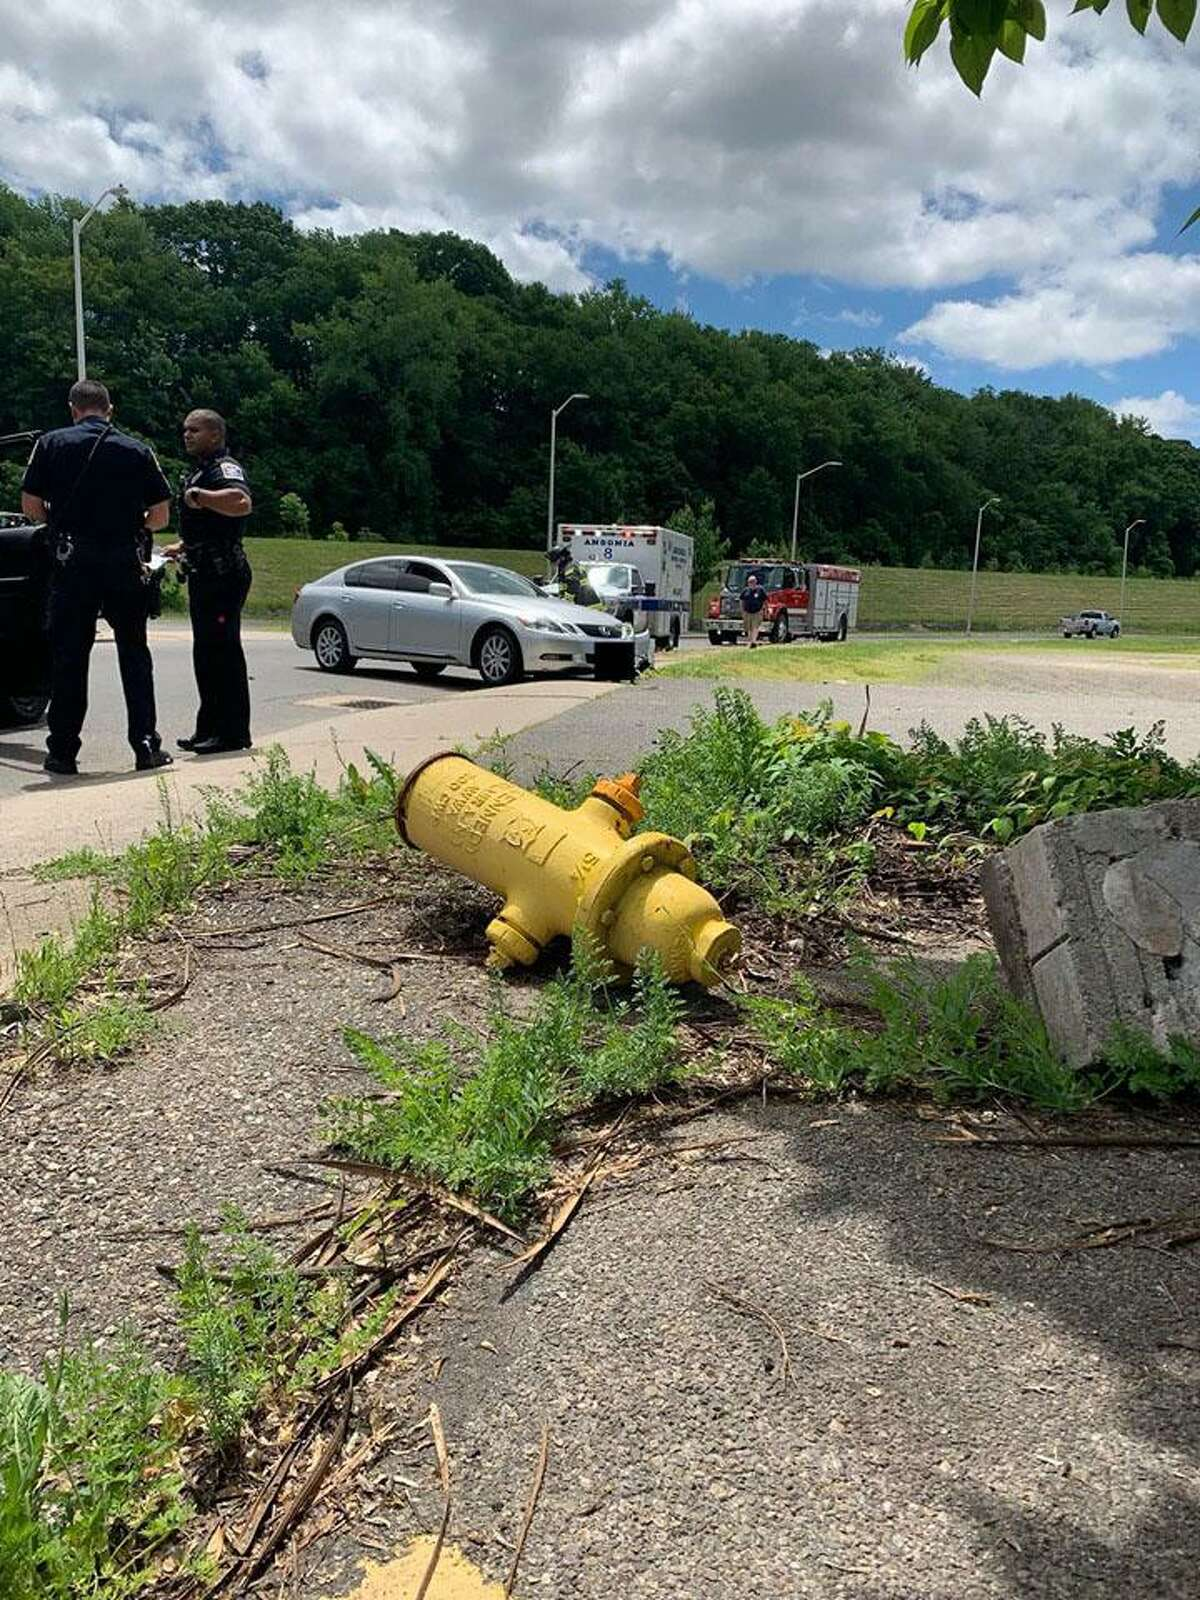 A motorist struck a fire hydrant earlier this afternoon, shearing it from its base and launching it 30 feet away.